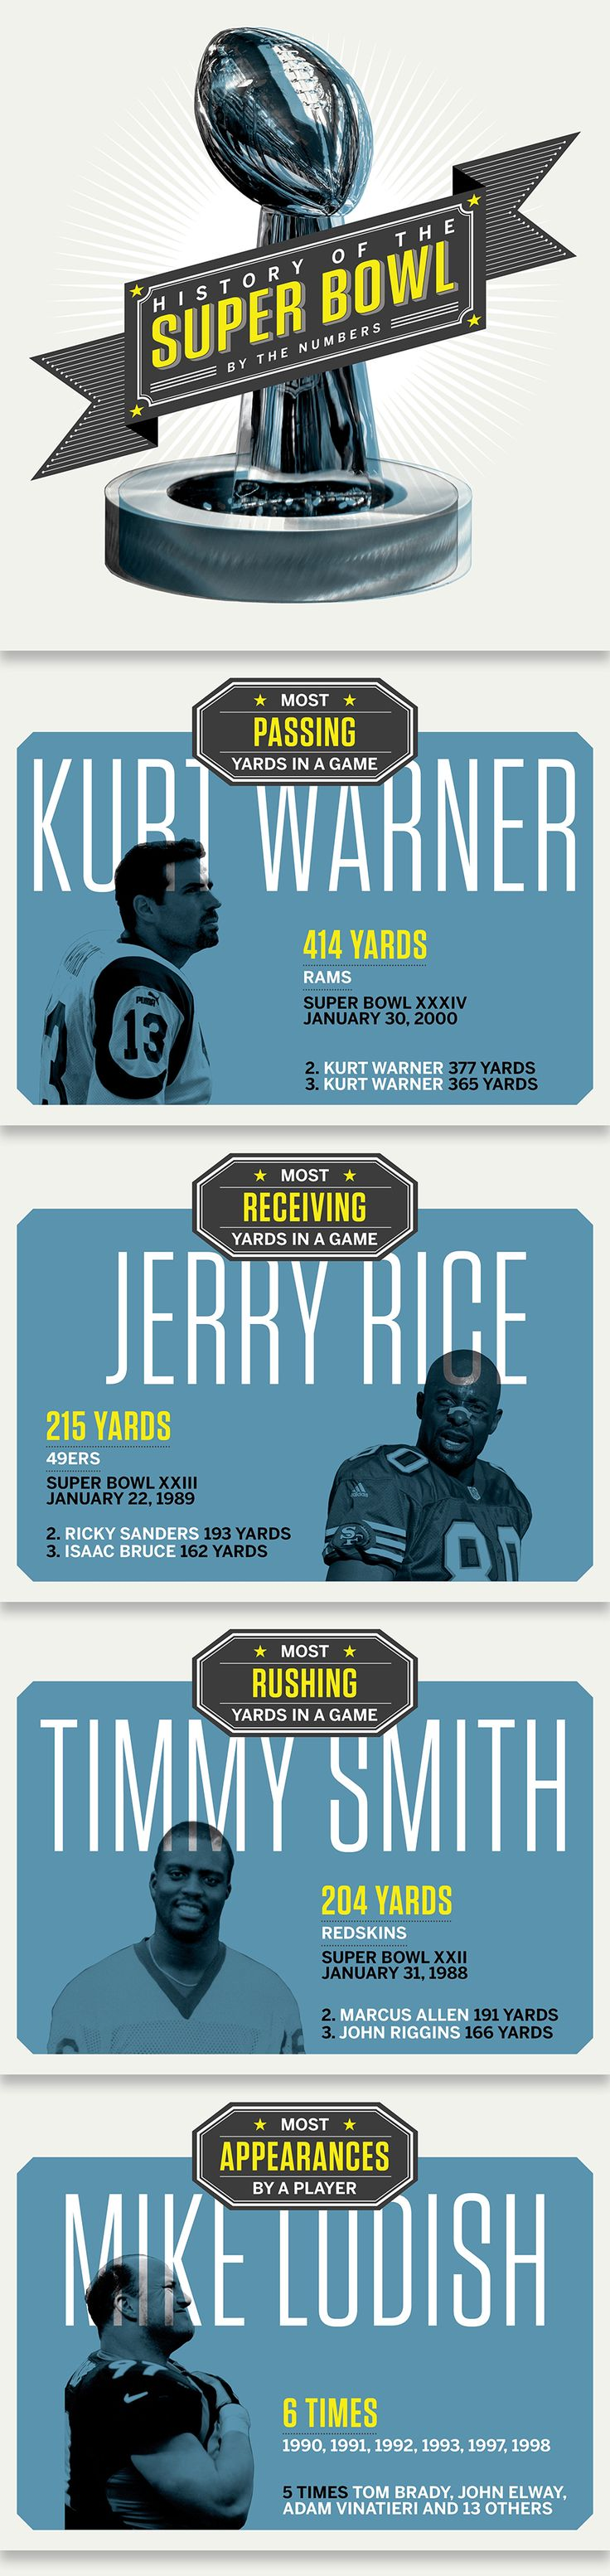 Infographic: The history of the Super Bowl told through numbers - ESPN The Magazine - ESPN